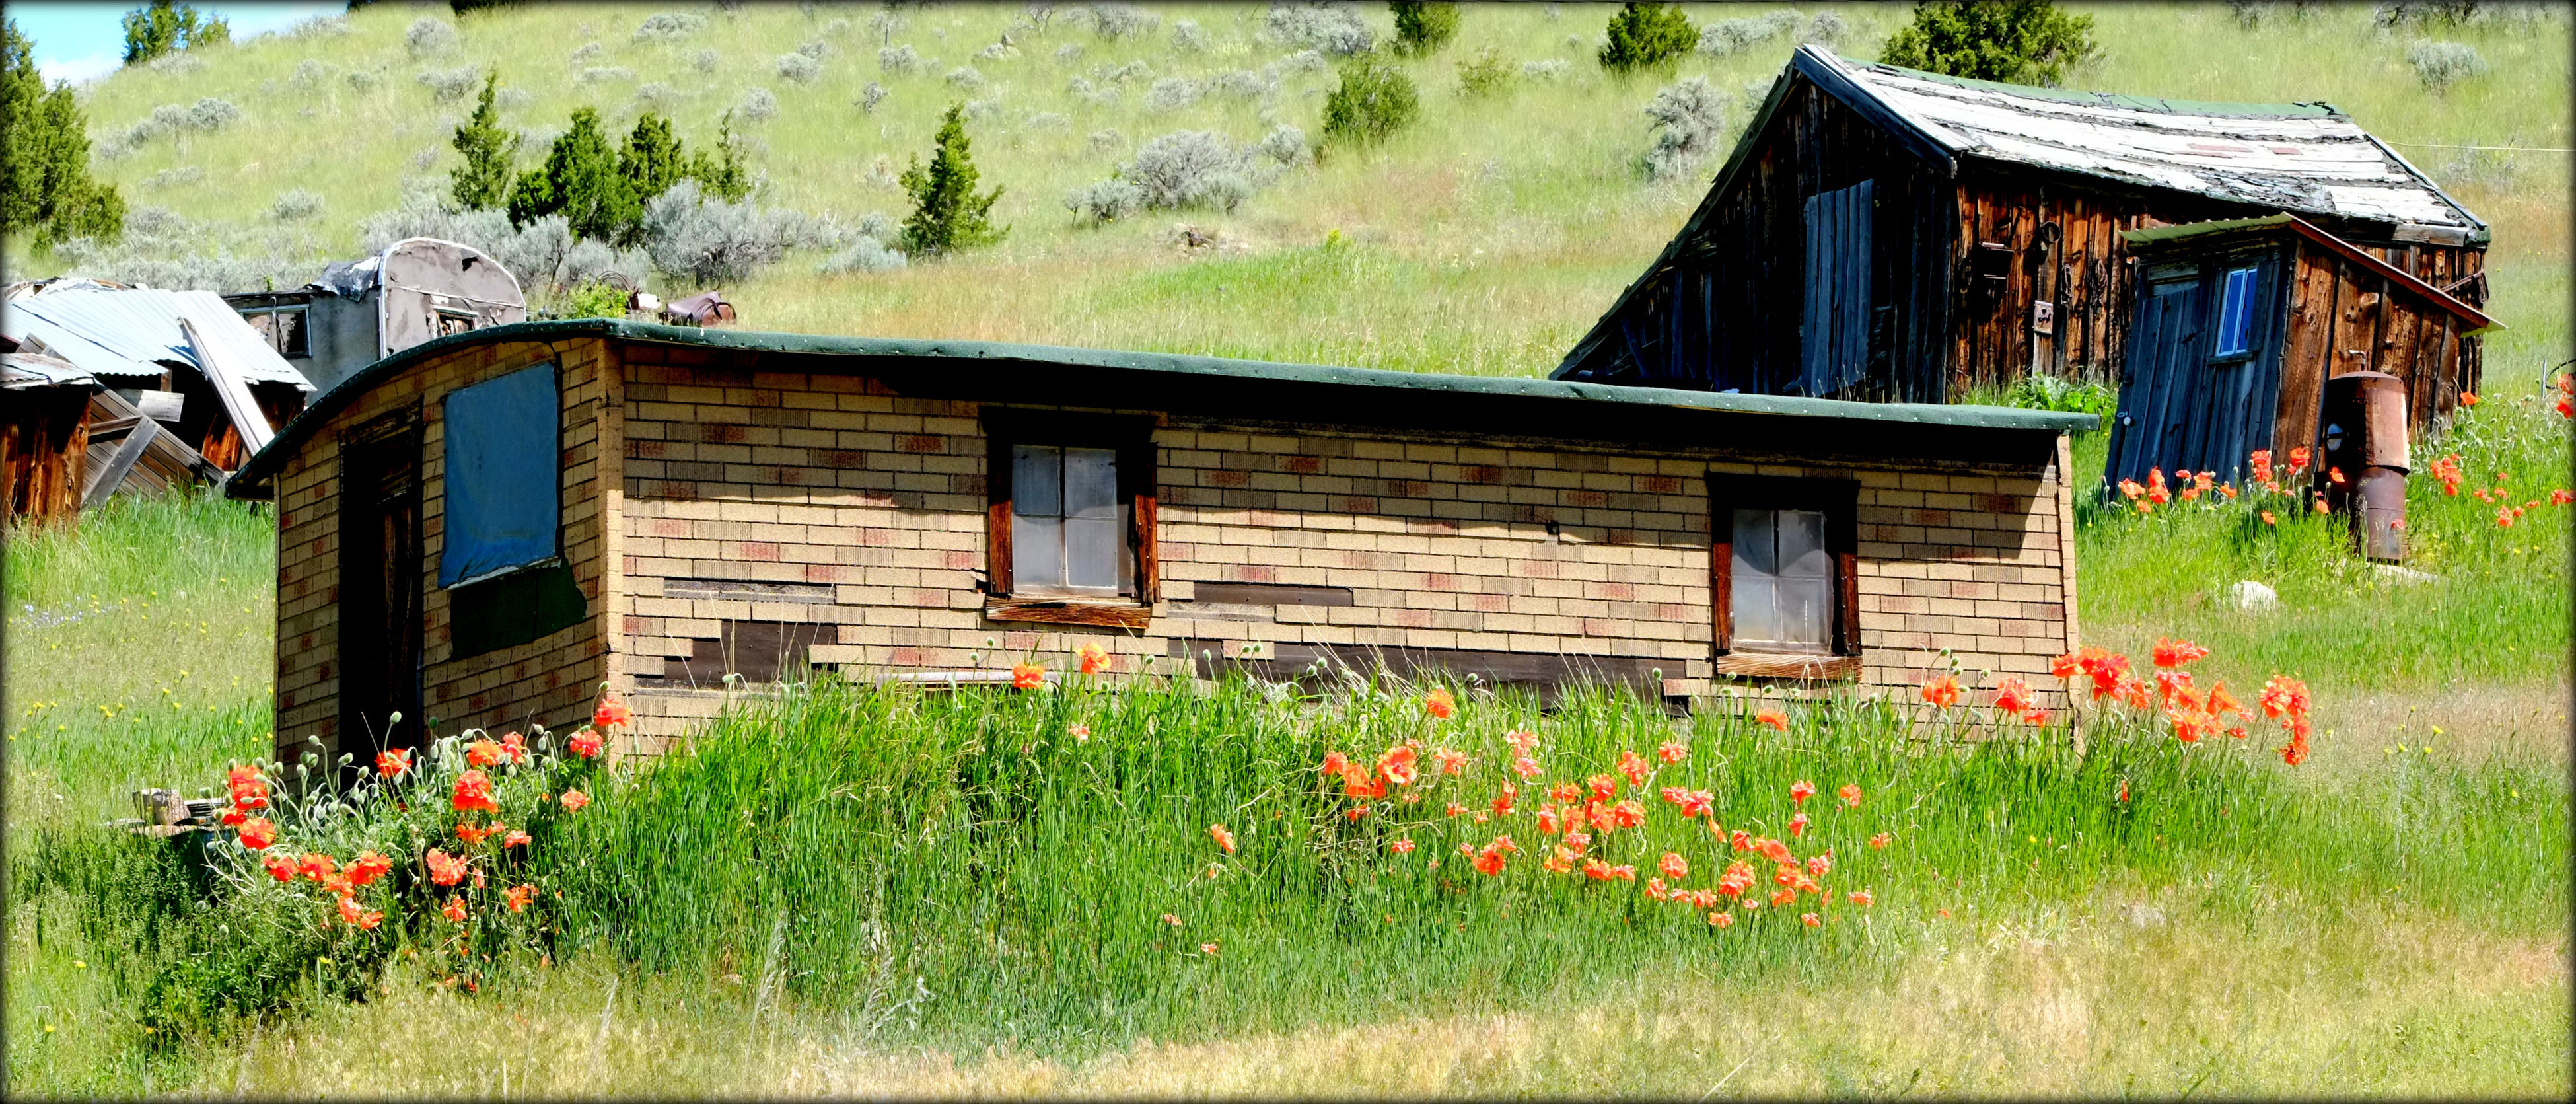 Cowboys hearding cattle Southwest, Montana USA. Ghost Town USA Gold Mining Town Miner's Cabin Old Buildings Outhouse Poppies In Bloom Poppy Flowers Spring Flowers Work Shop